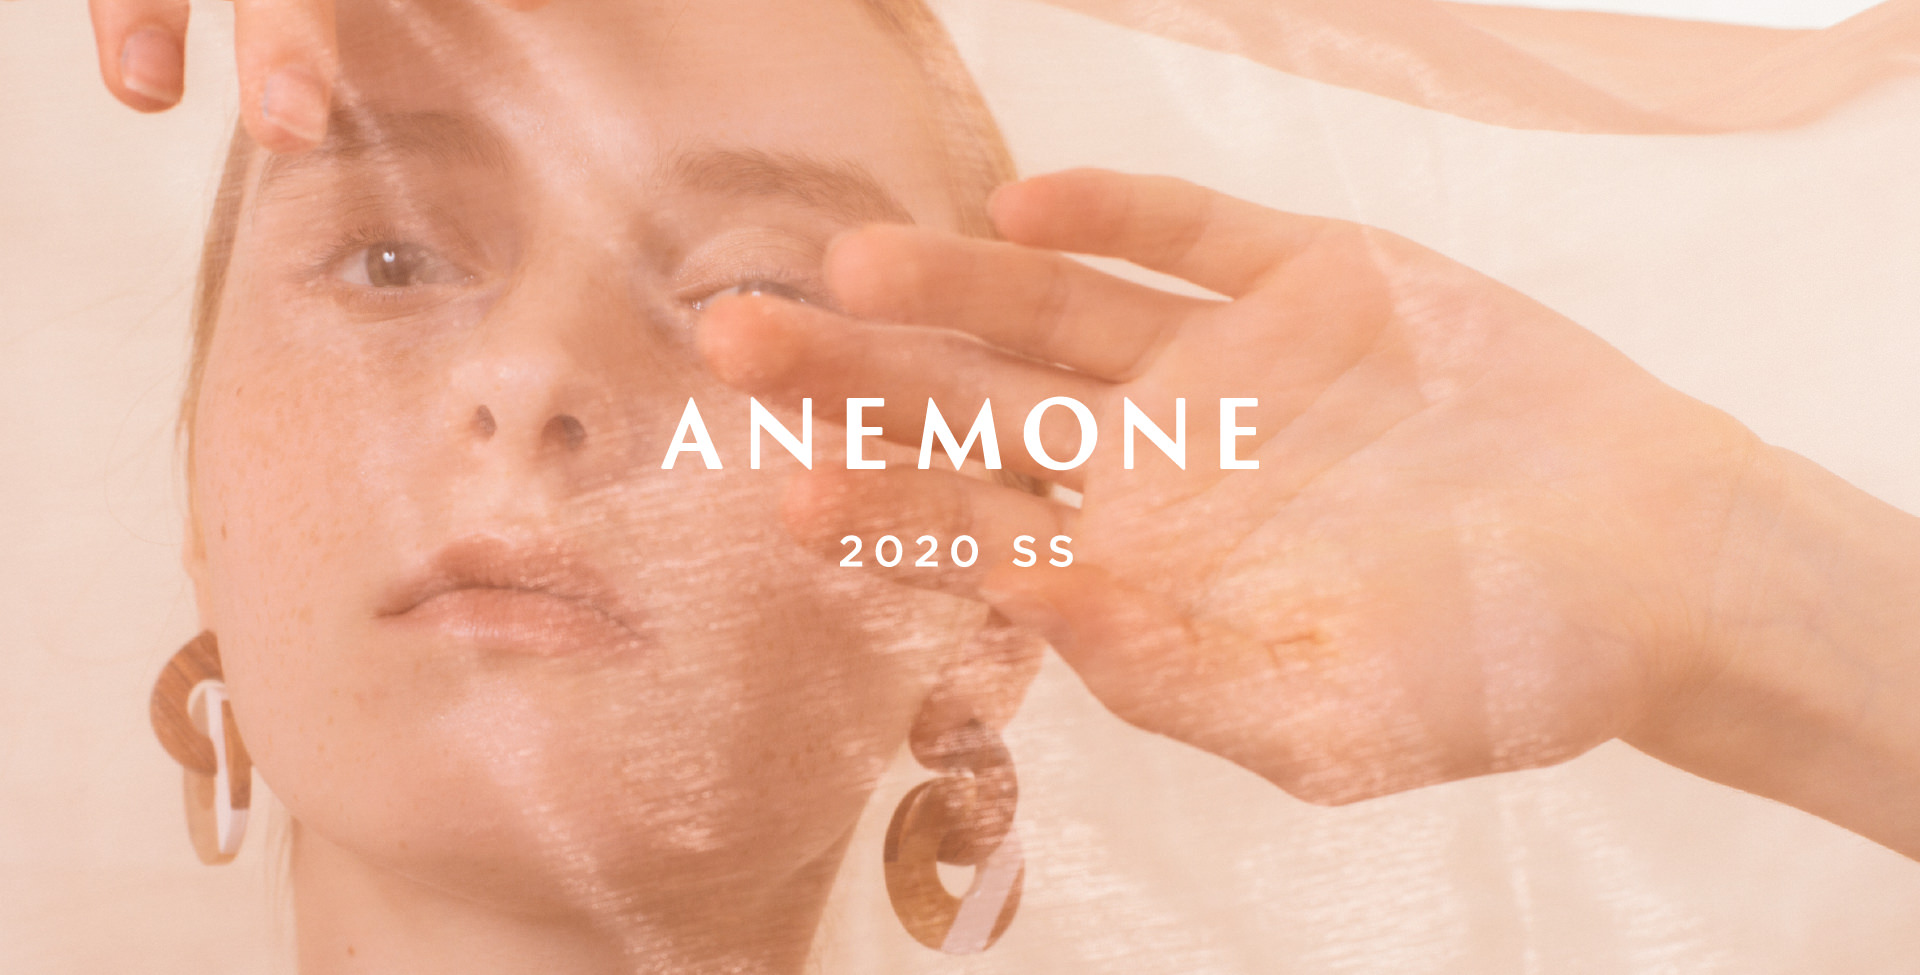 ANEMONE 2020 SS May